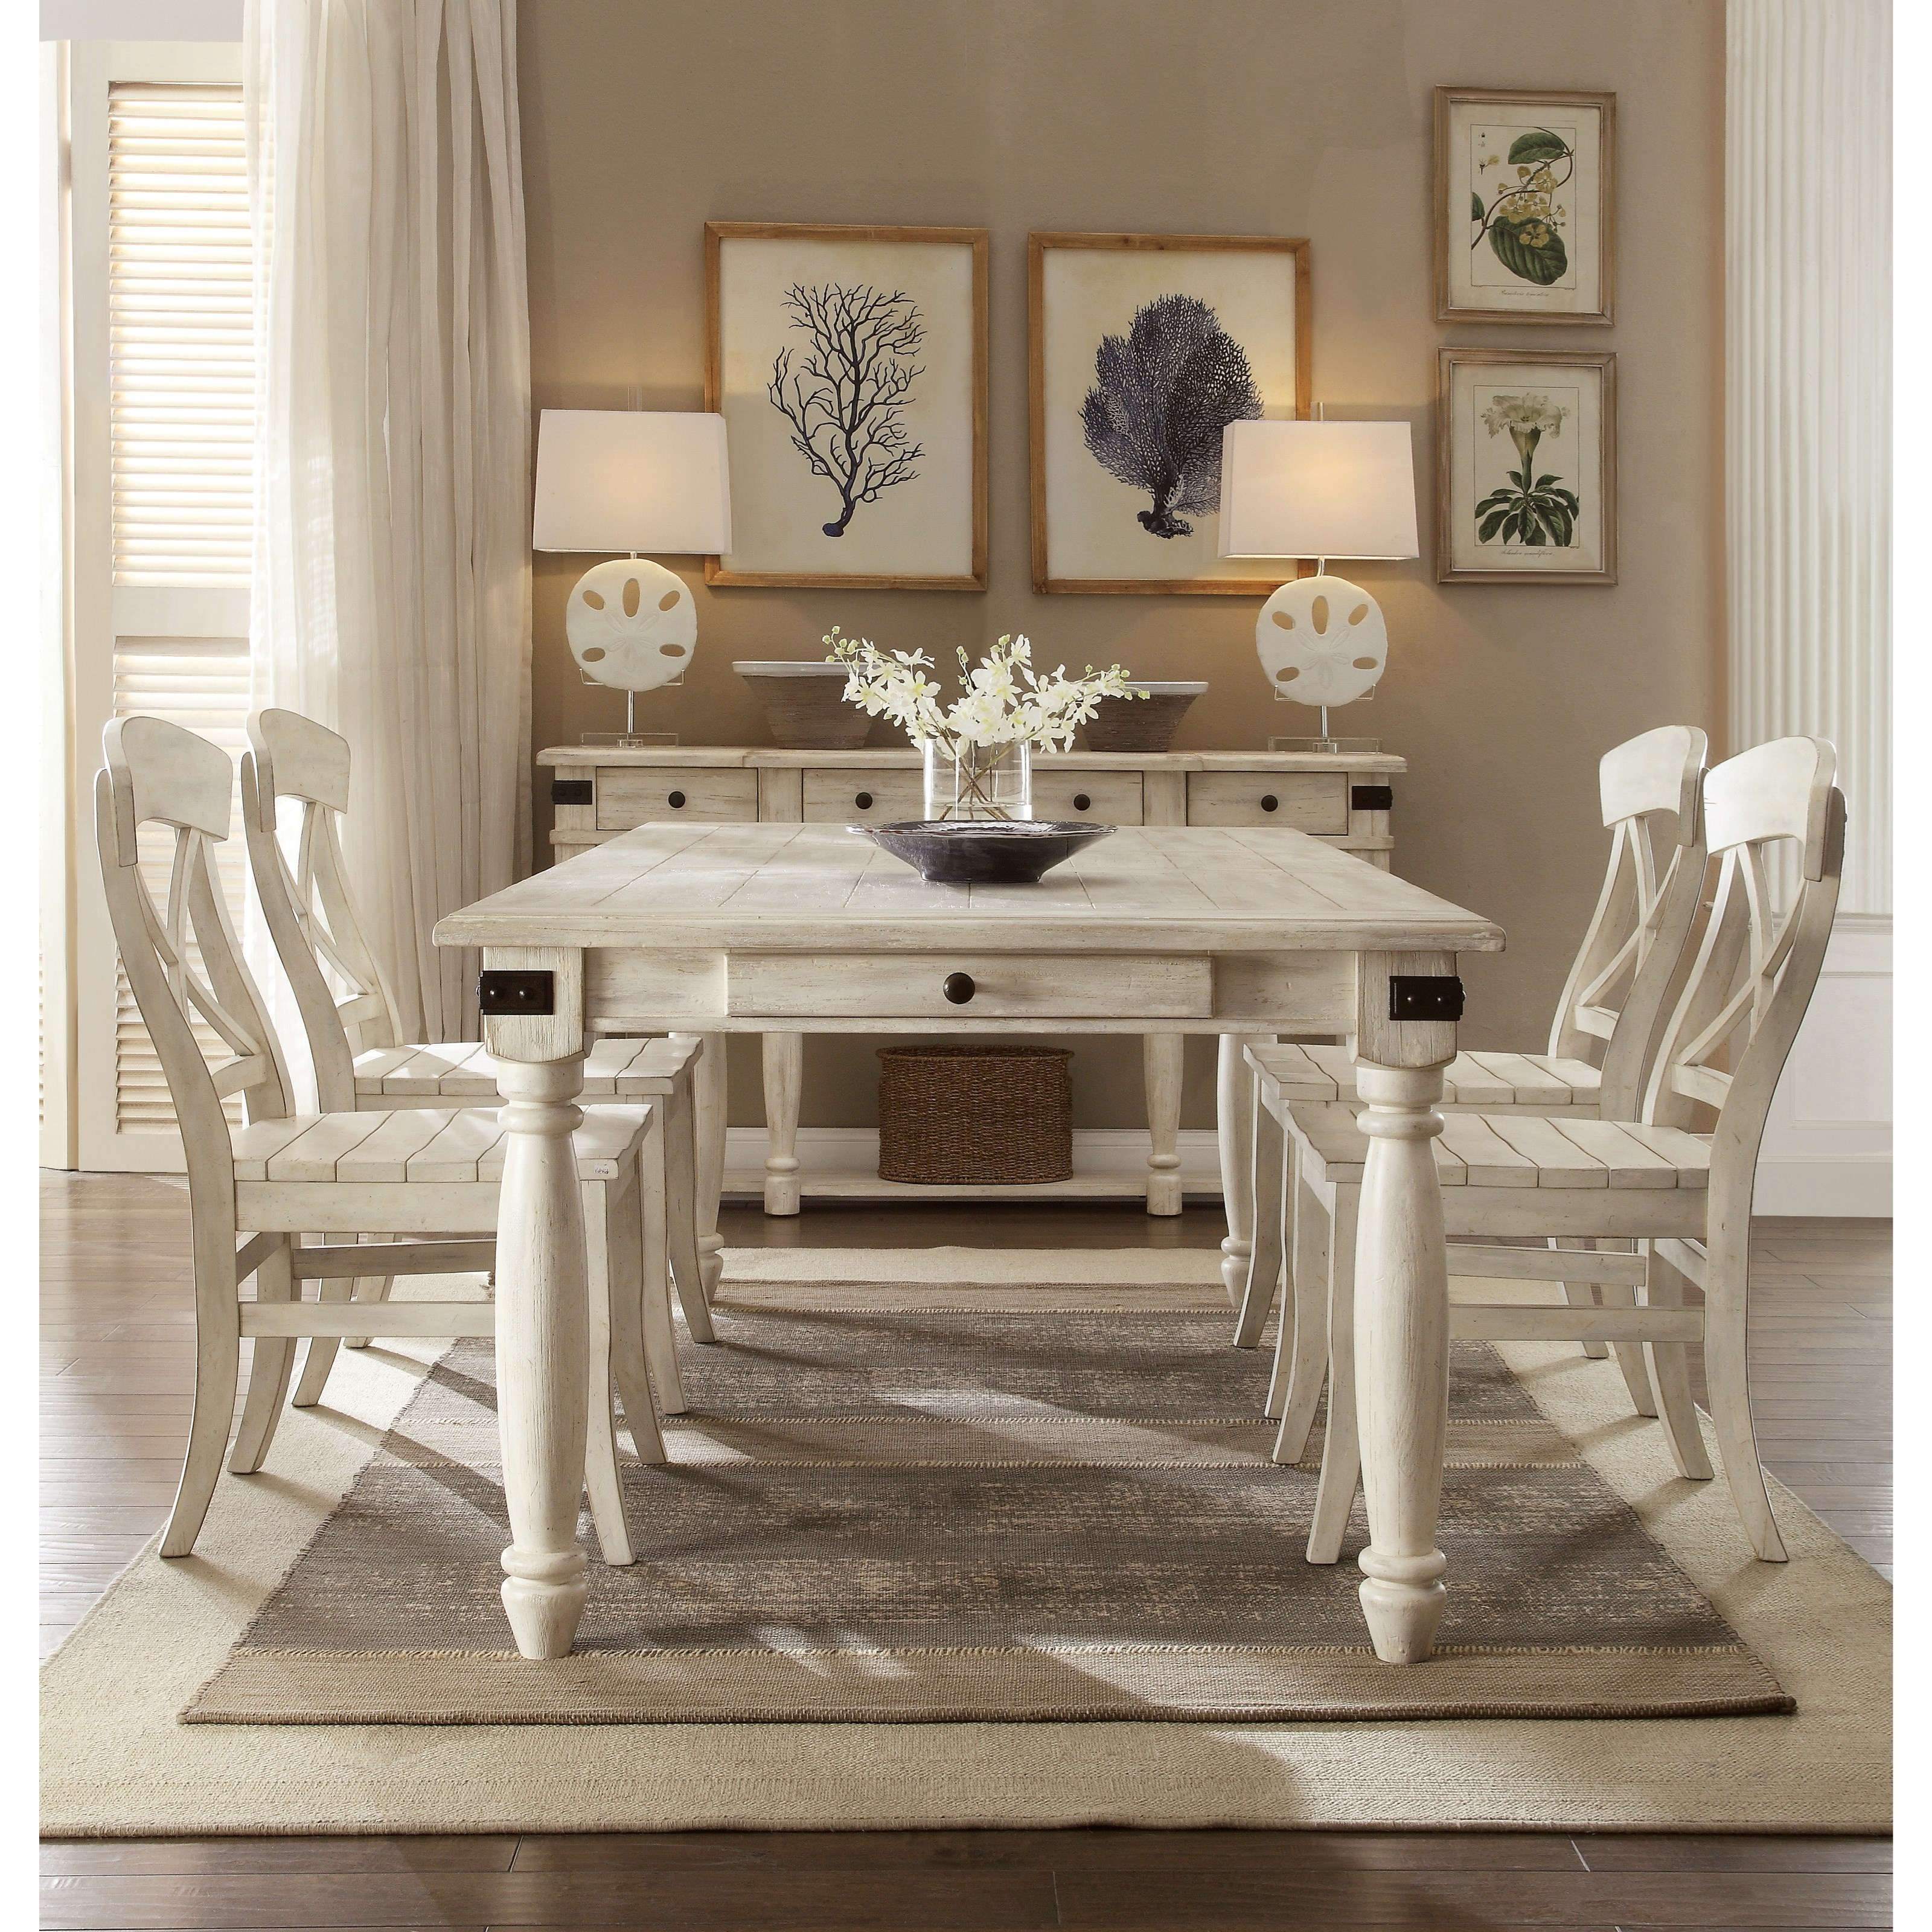 Dining Room Set For 2: Riverside Furniture Regan 5 Piece 2 Drawer Dining Table